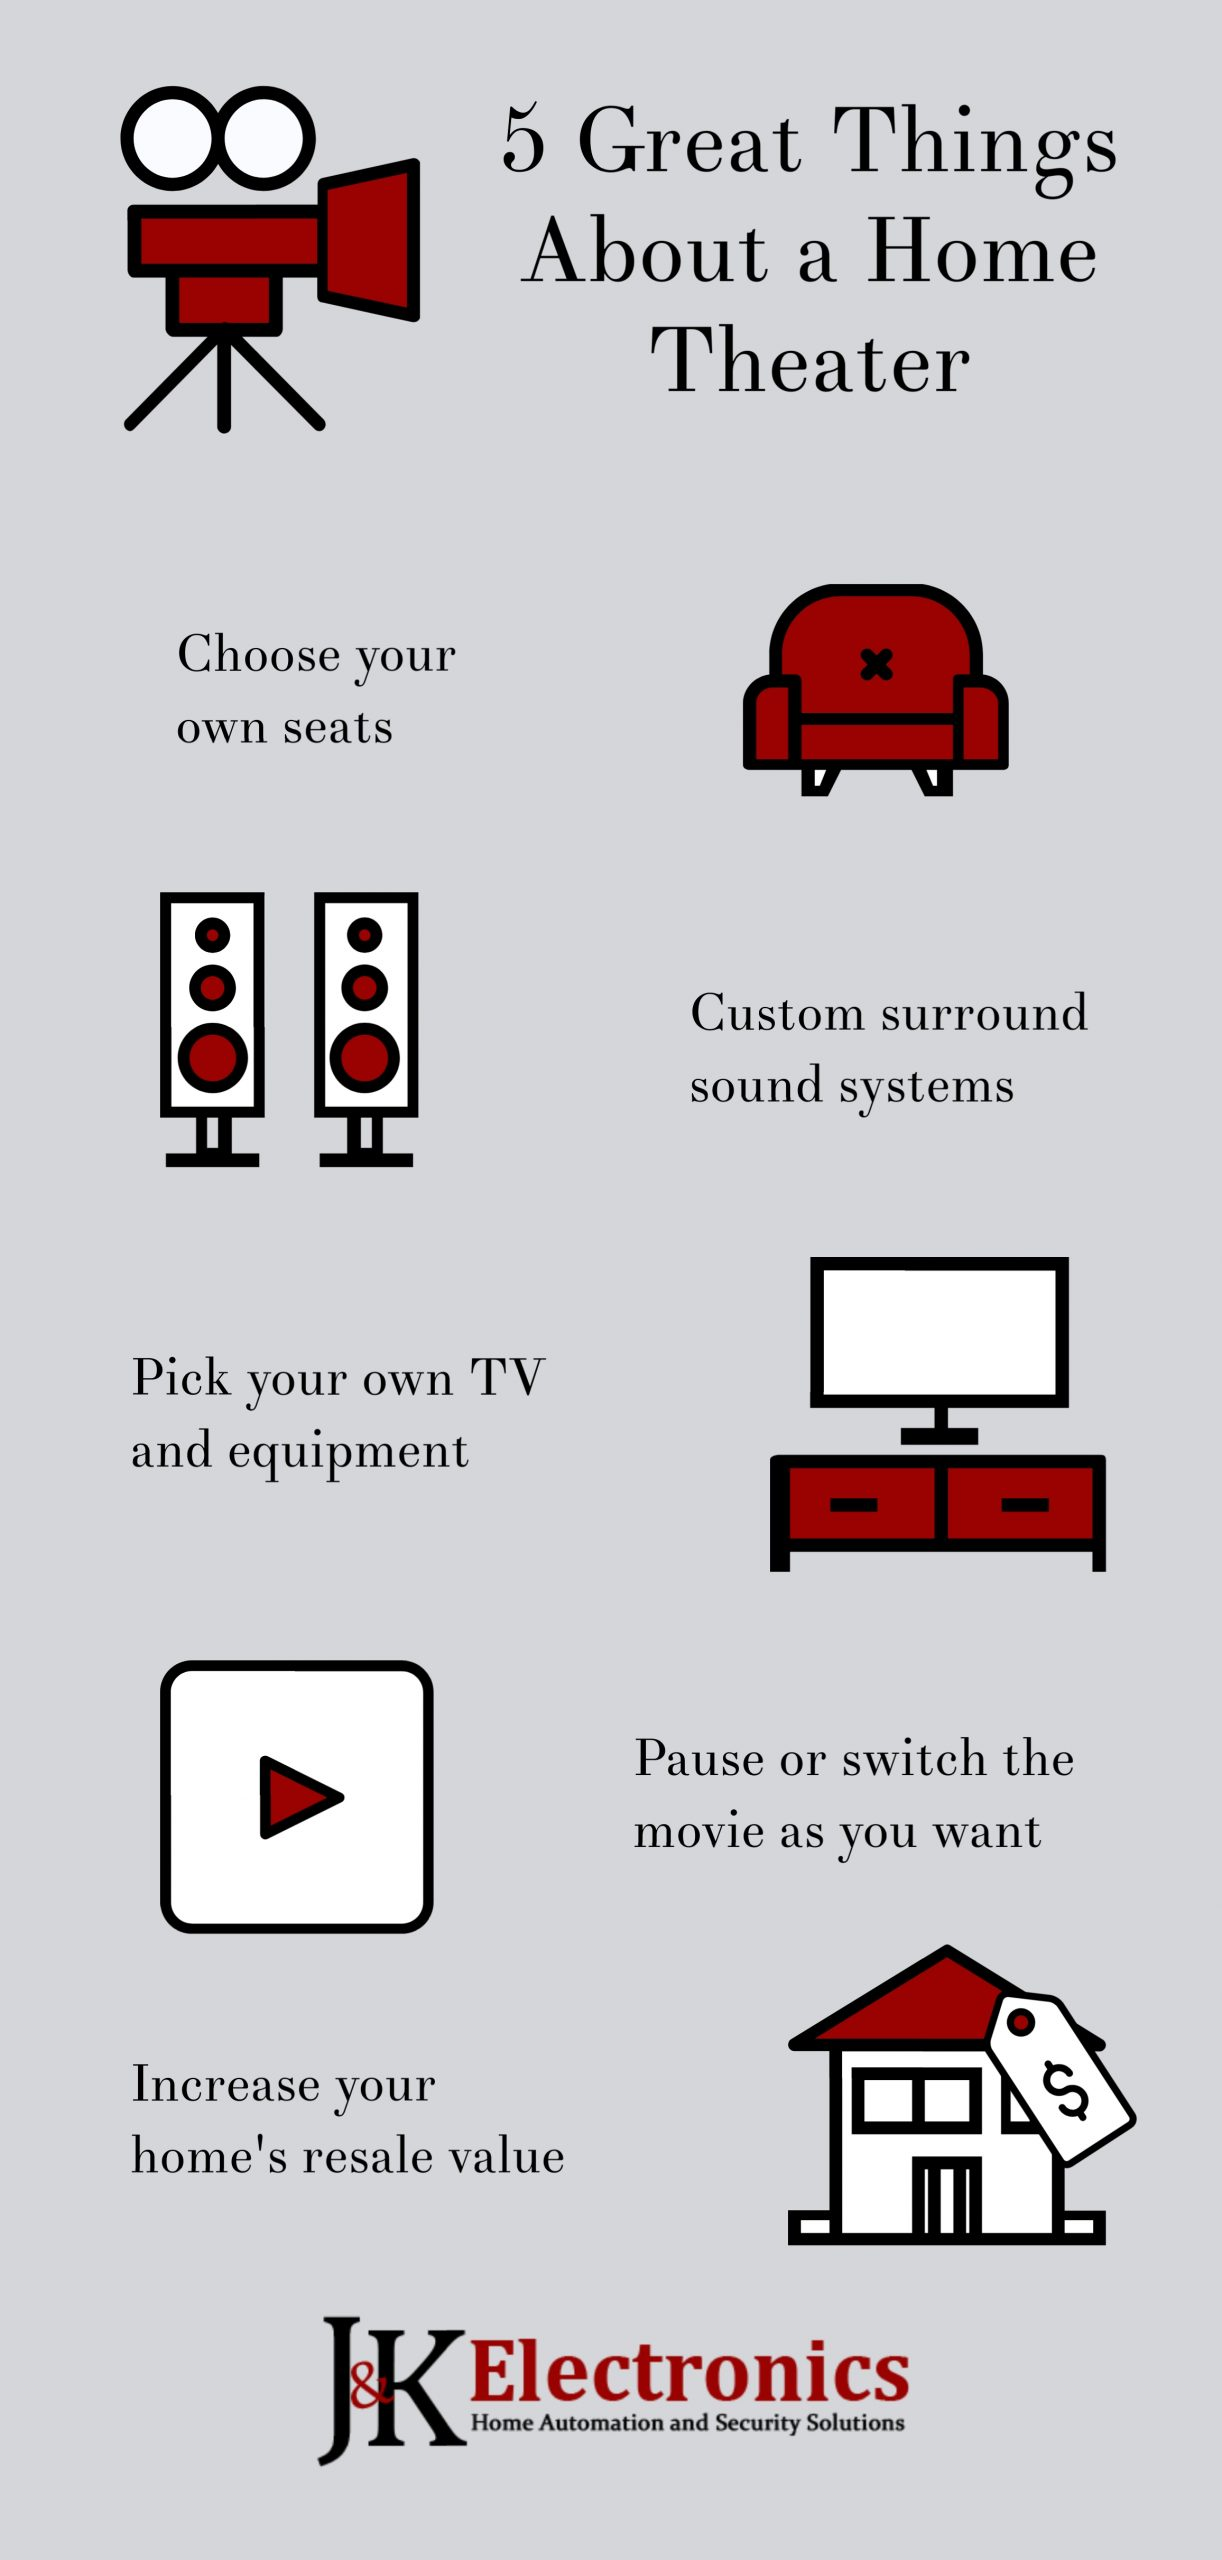 5 Advantages of a Home Theater, J&K Electronics, Houston